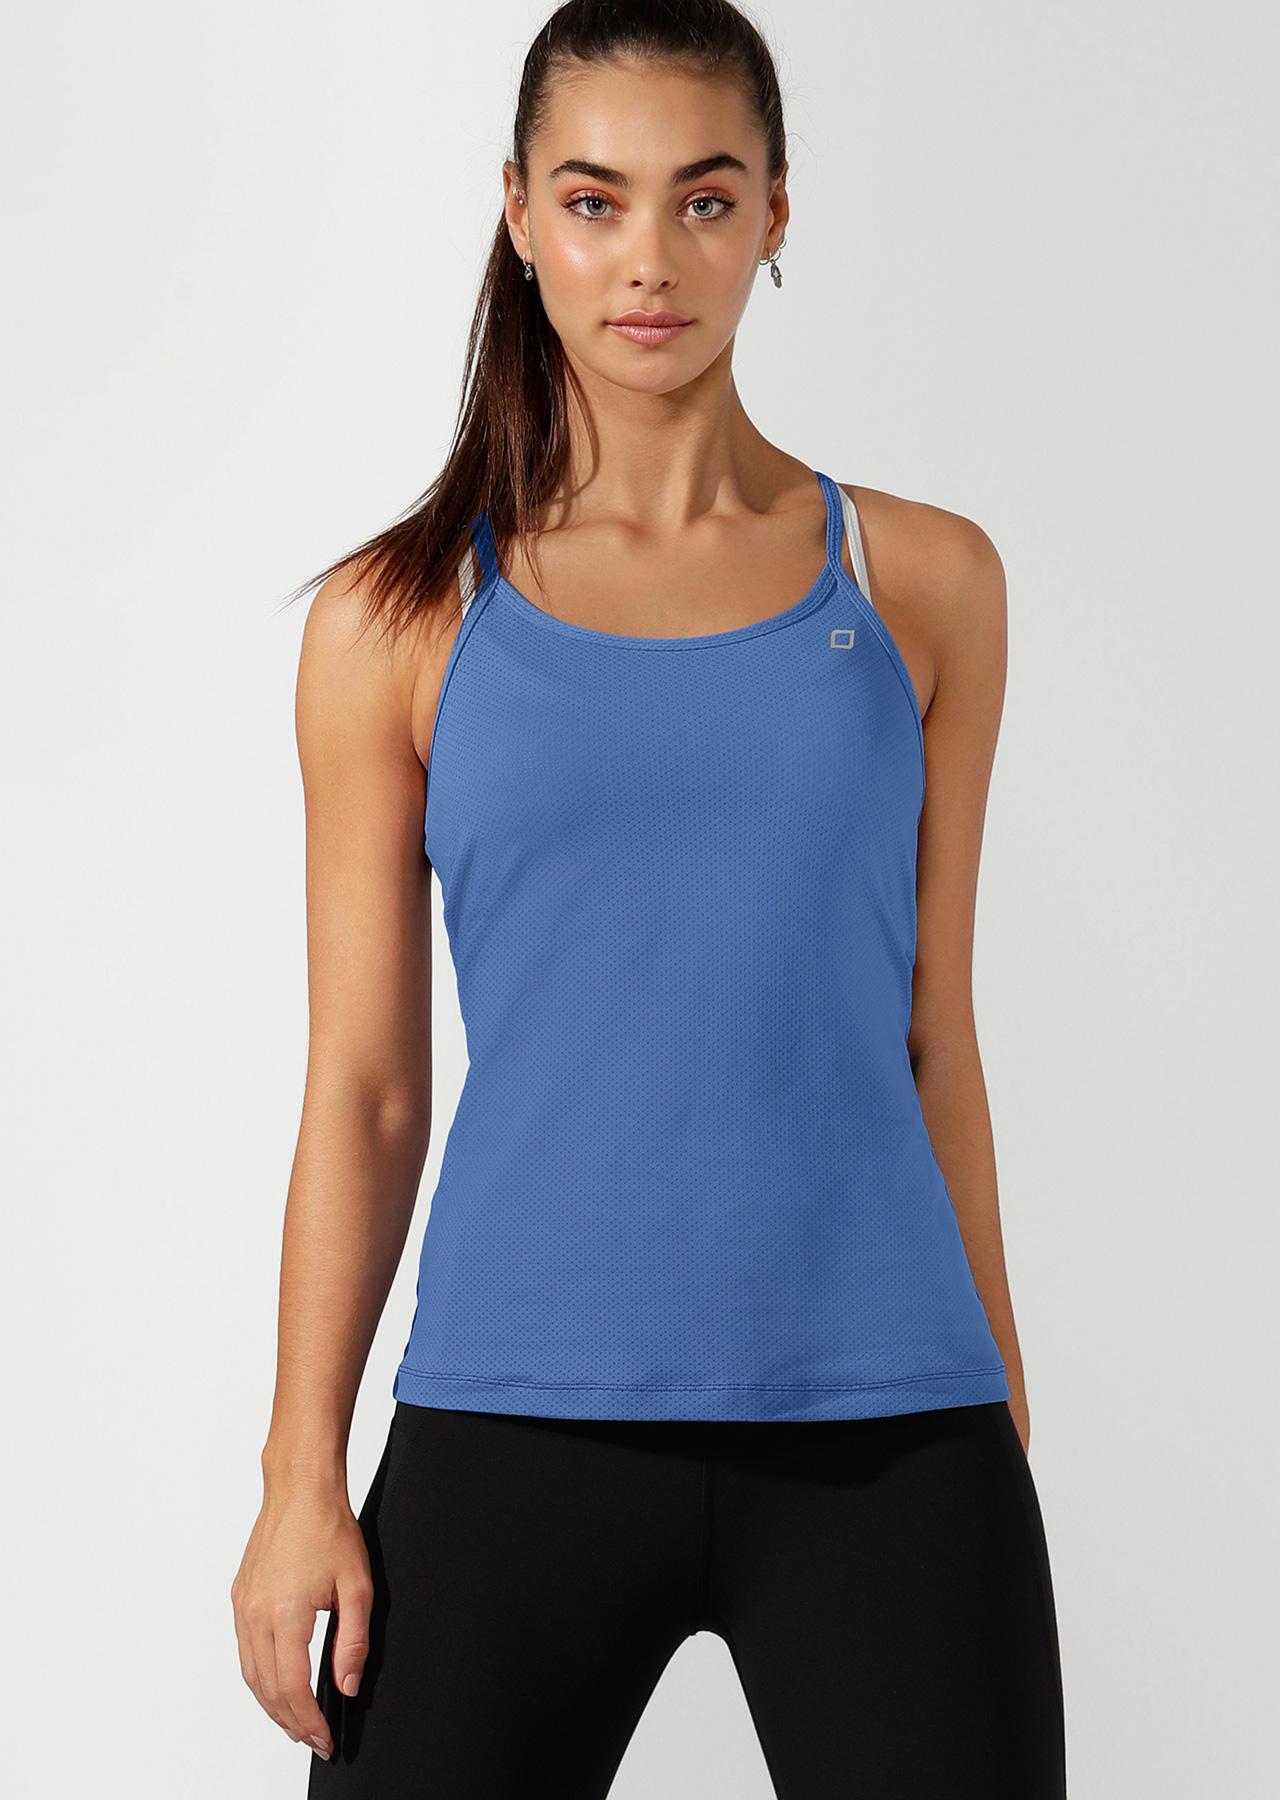 go time excel tank blue 091950 cosd 1 - Sports & Fitness